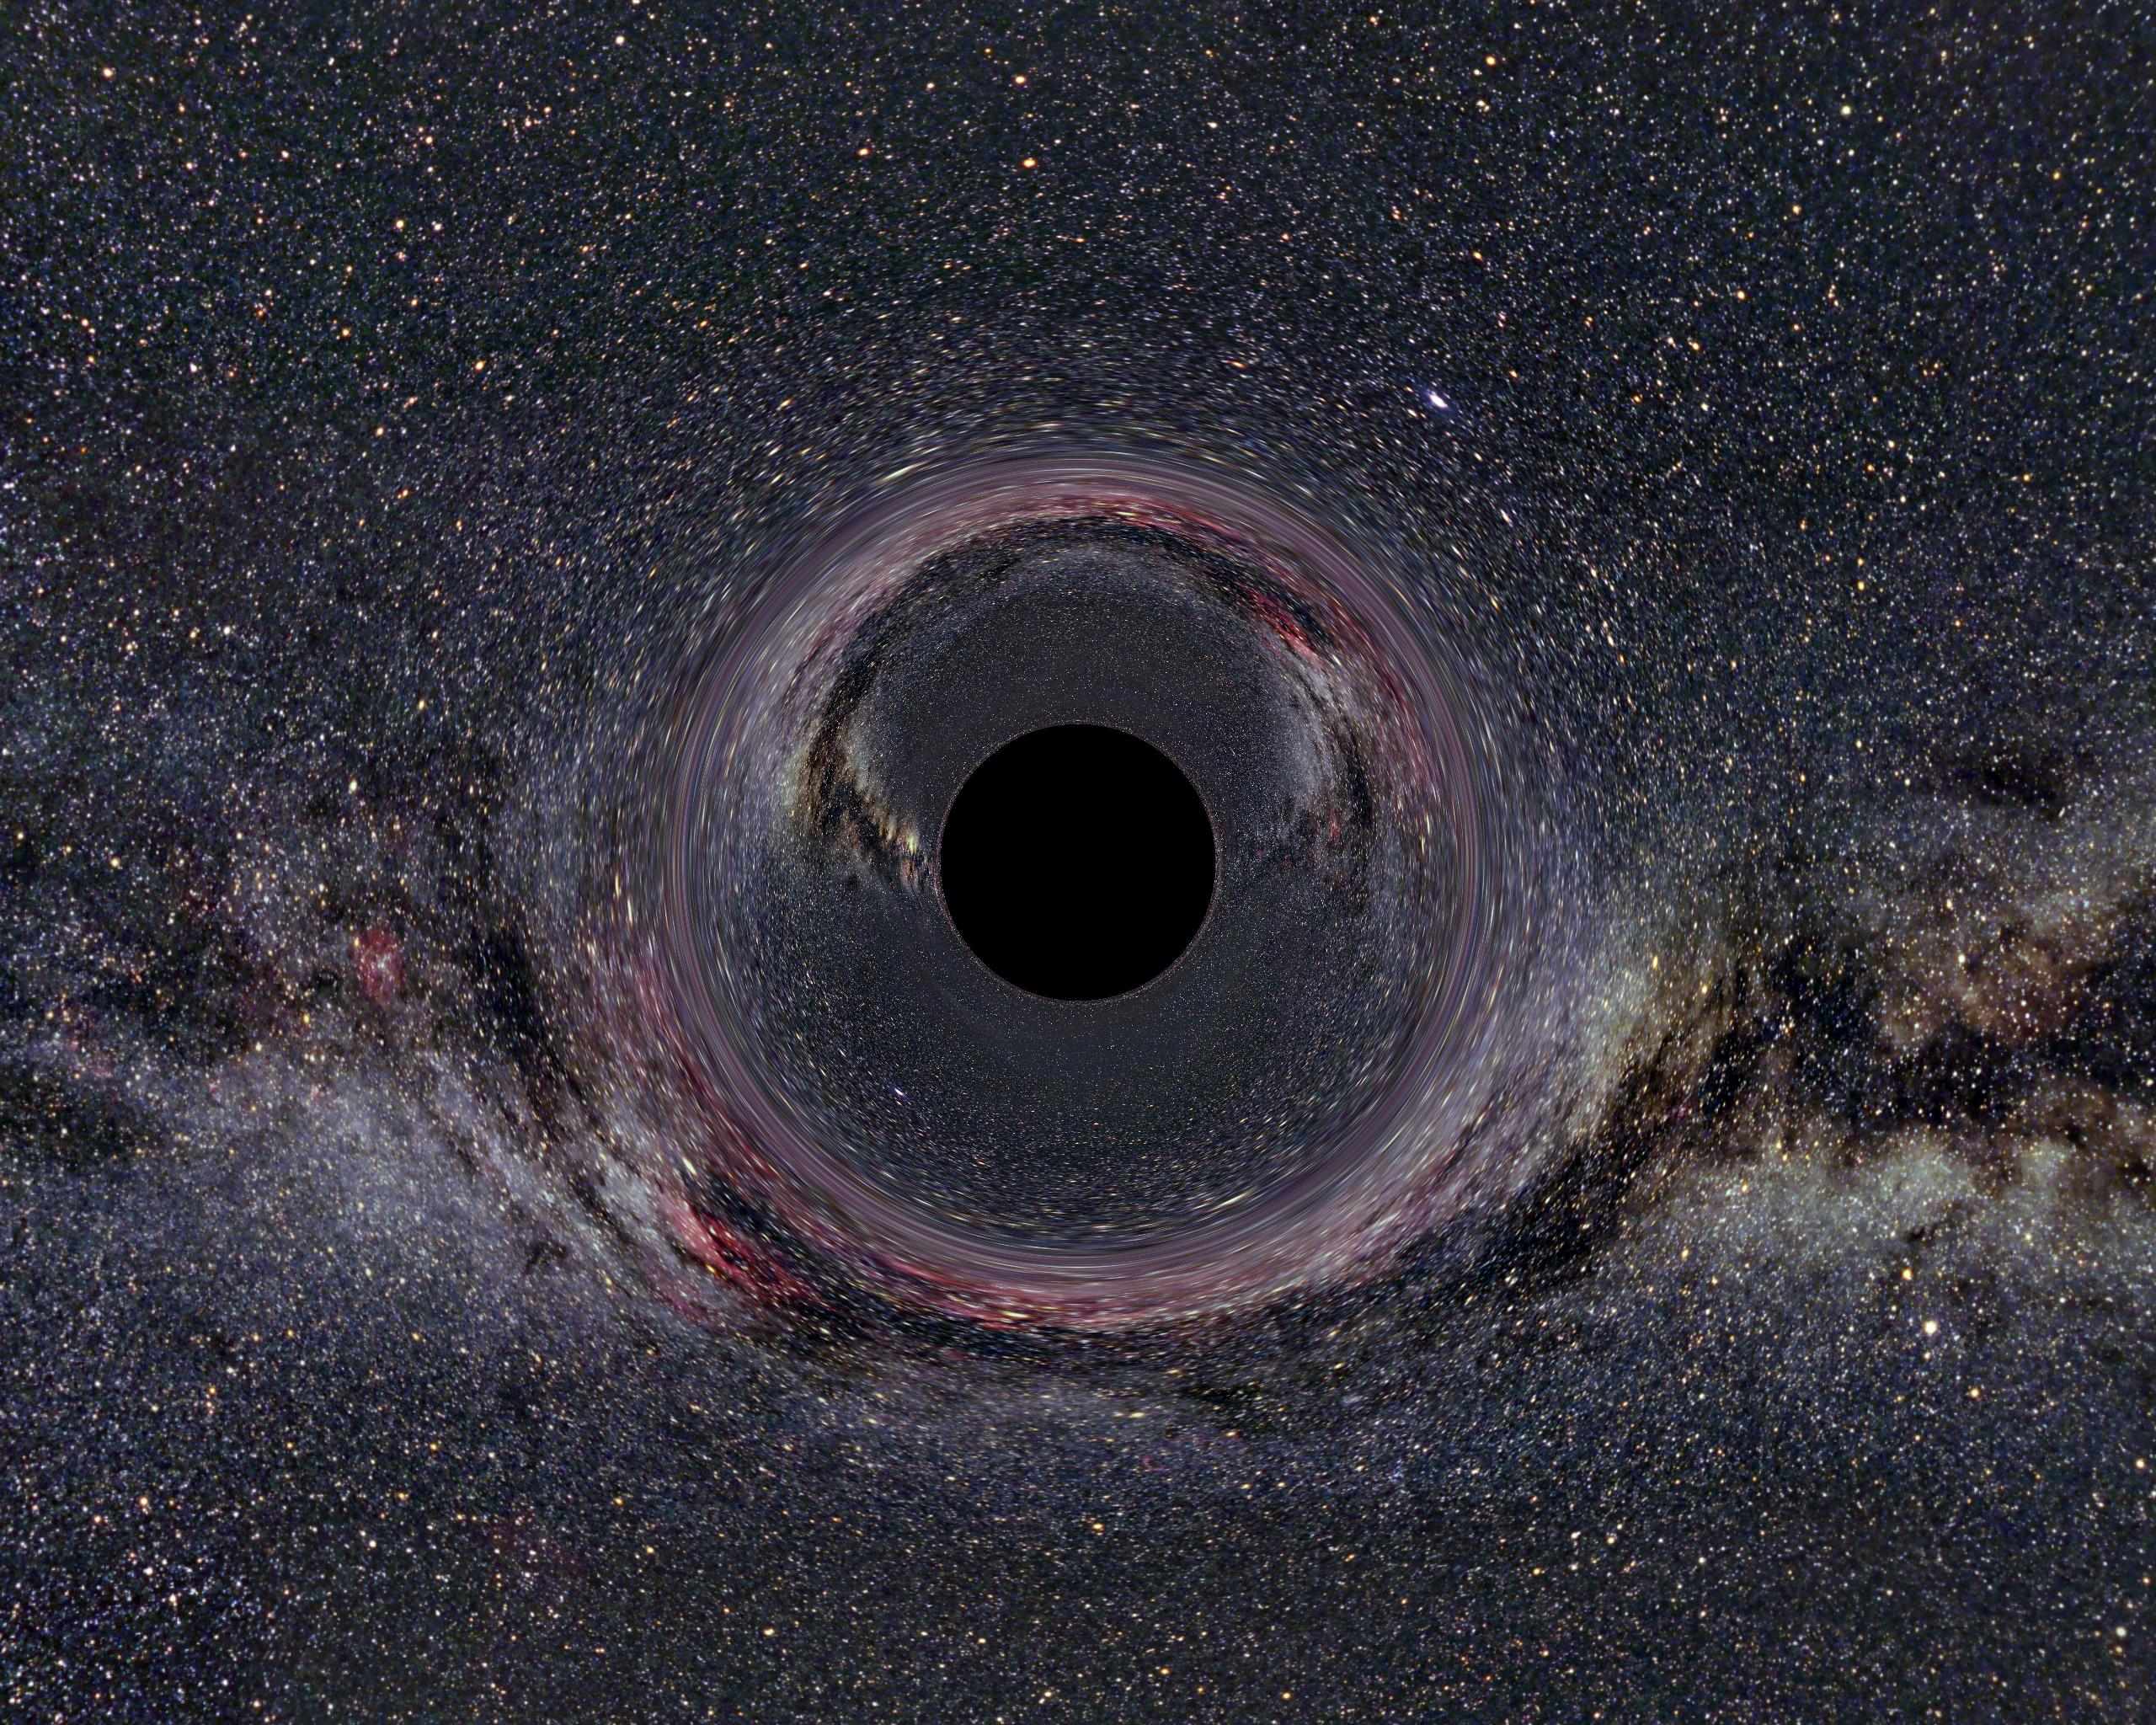 http://upload.wikimedia.org/wikipedia/commons/c/cd/Black_Hole_Milkyway.jpg